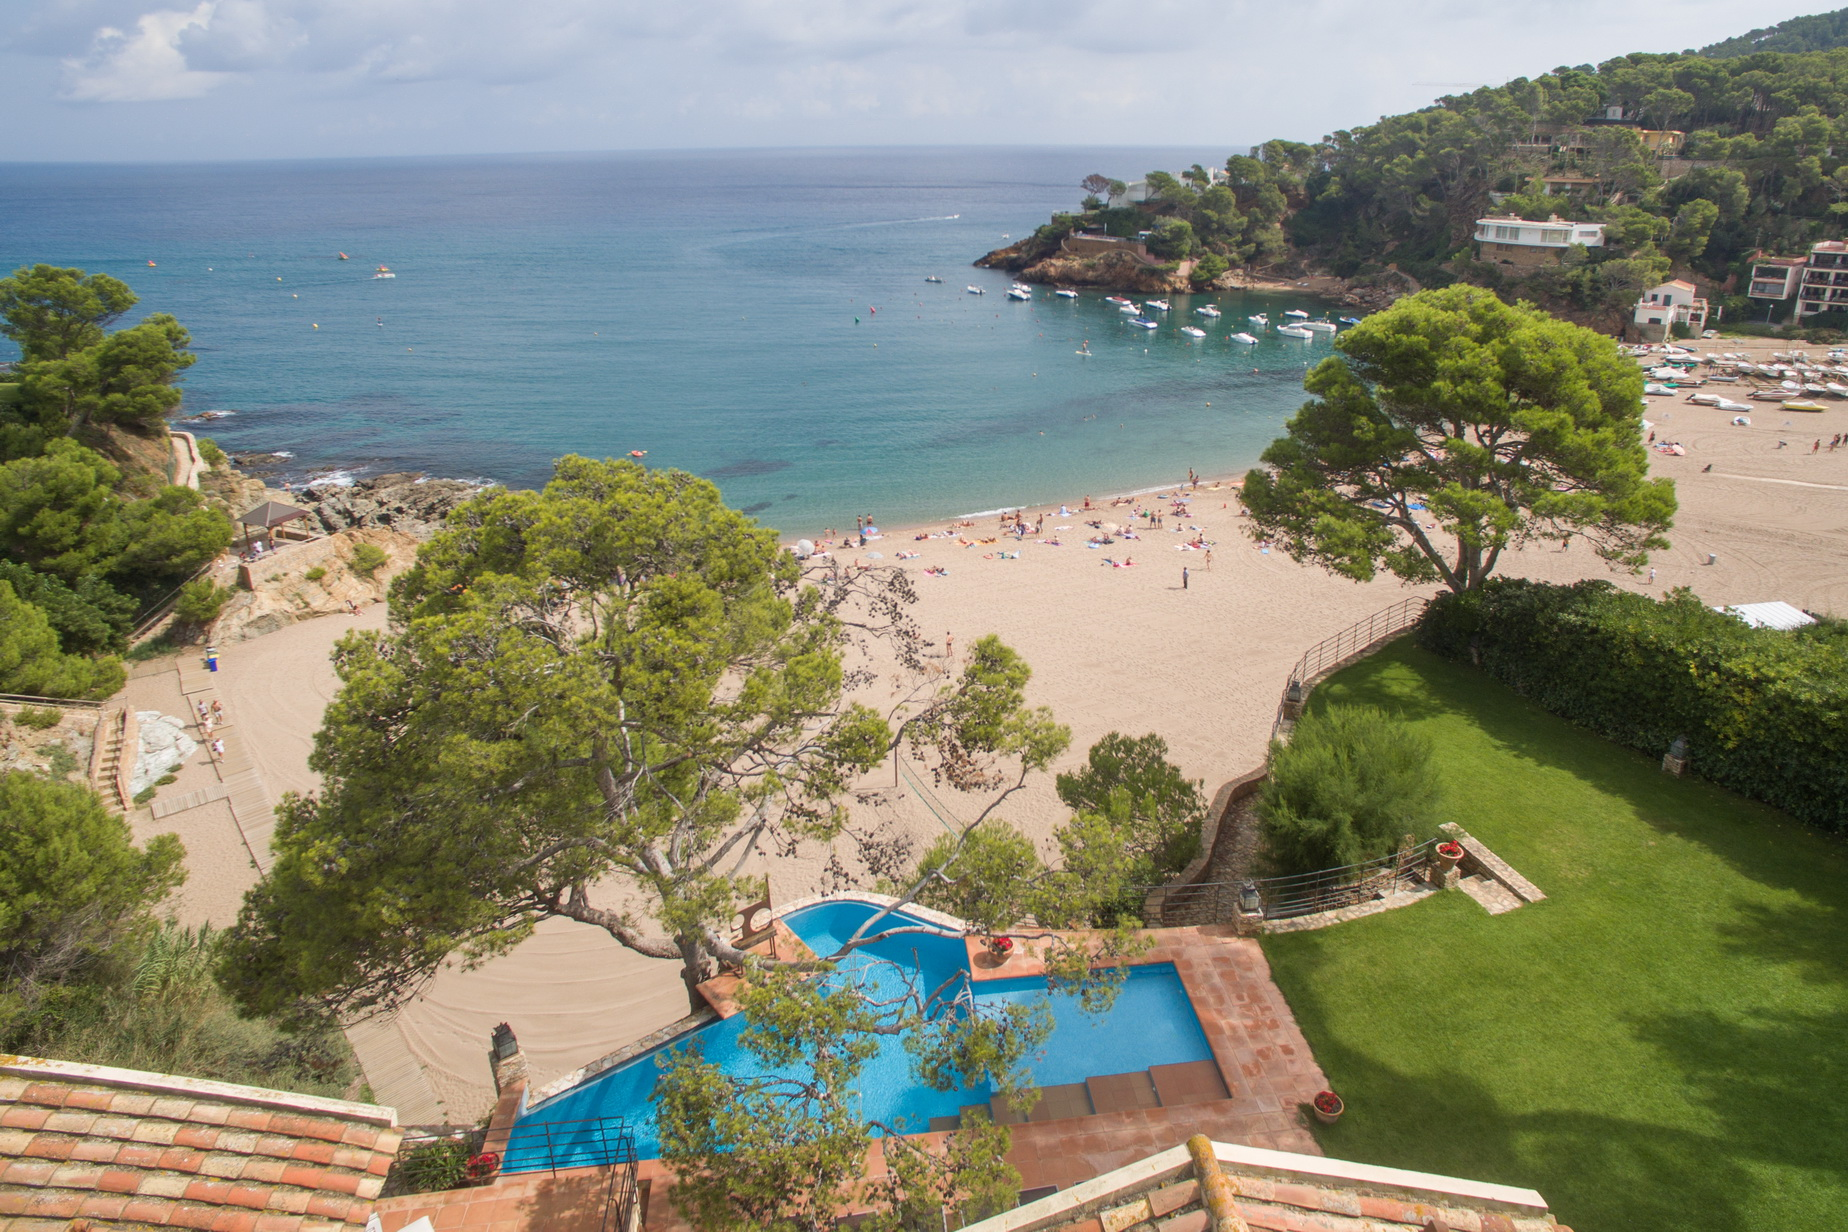 Casa Unifamiliar por un Venta en Large luxury property on the seafront Begur, Costa Brava 17255 España